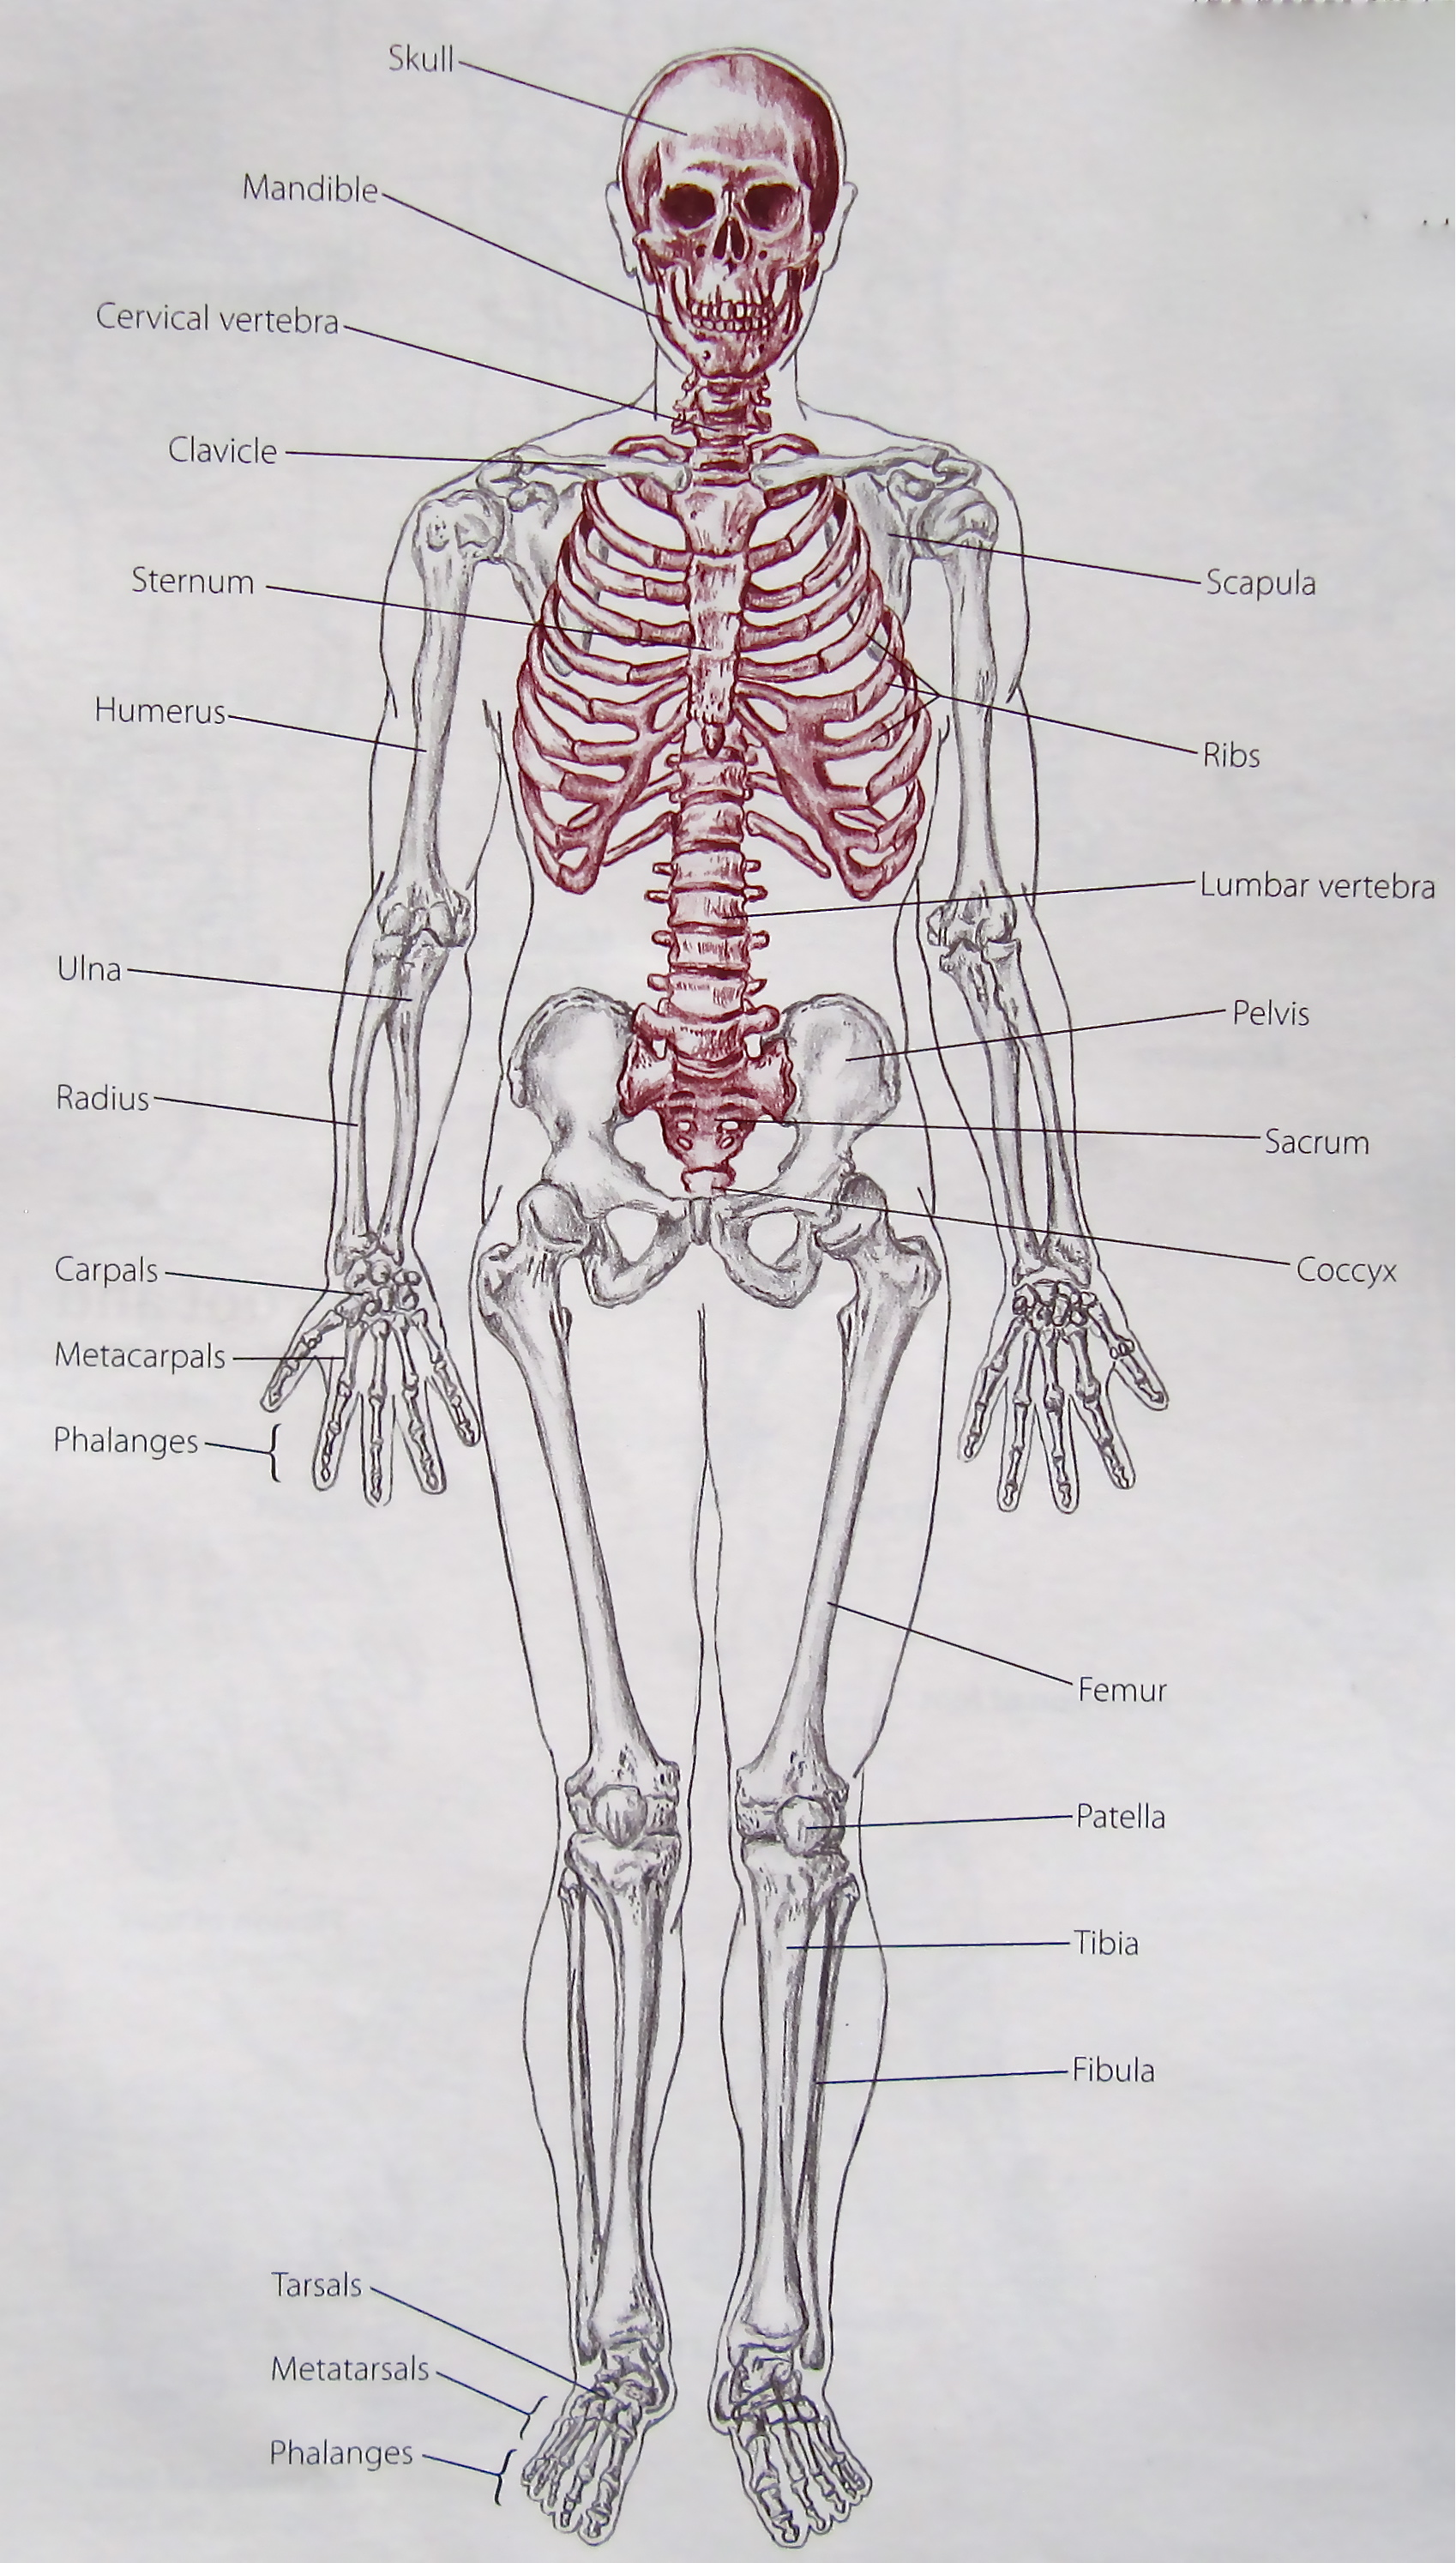 Notes on Anatomy and Physiology: Learning with the Hand and Elbow |